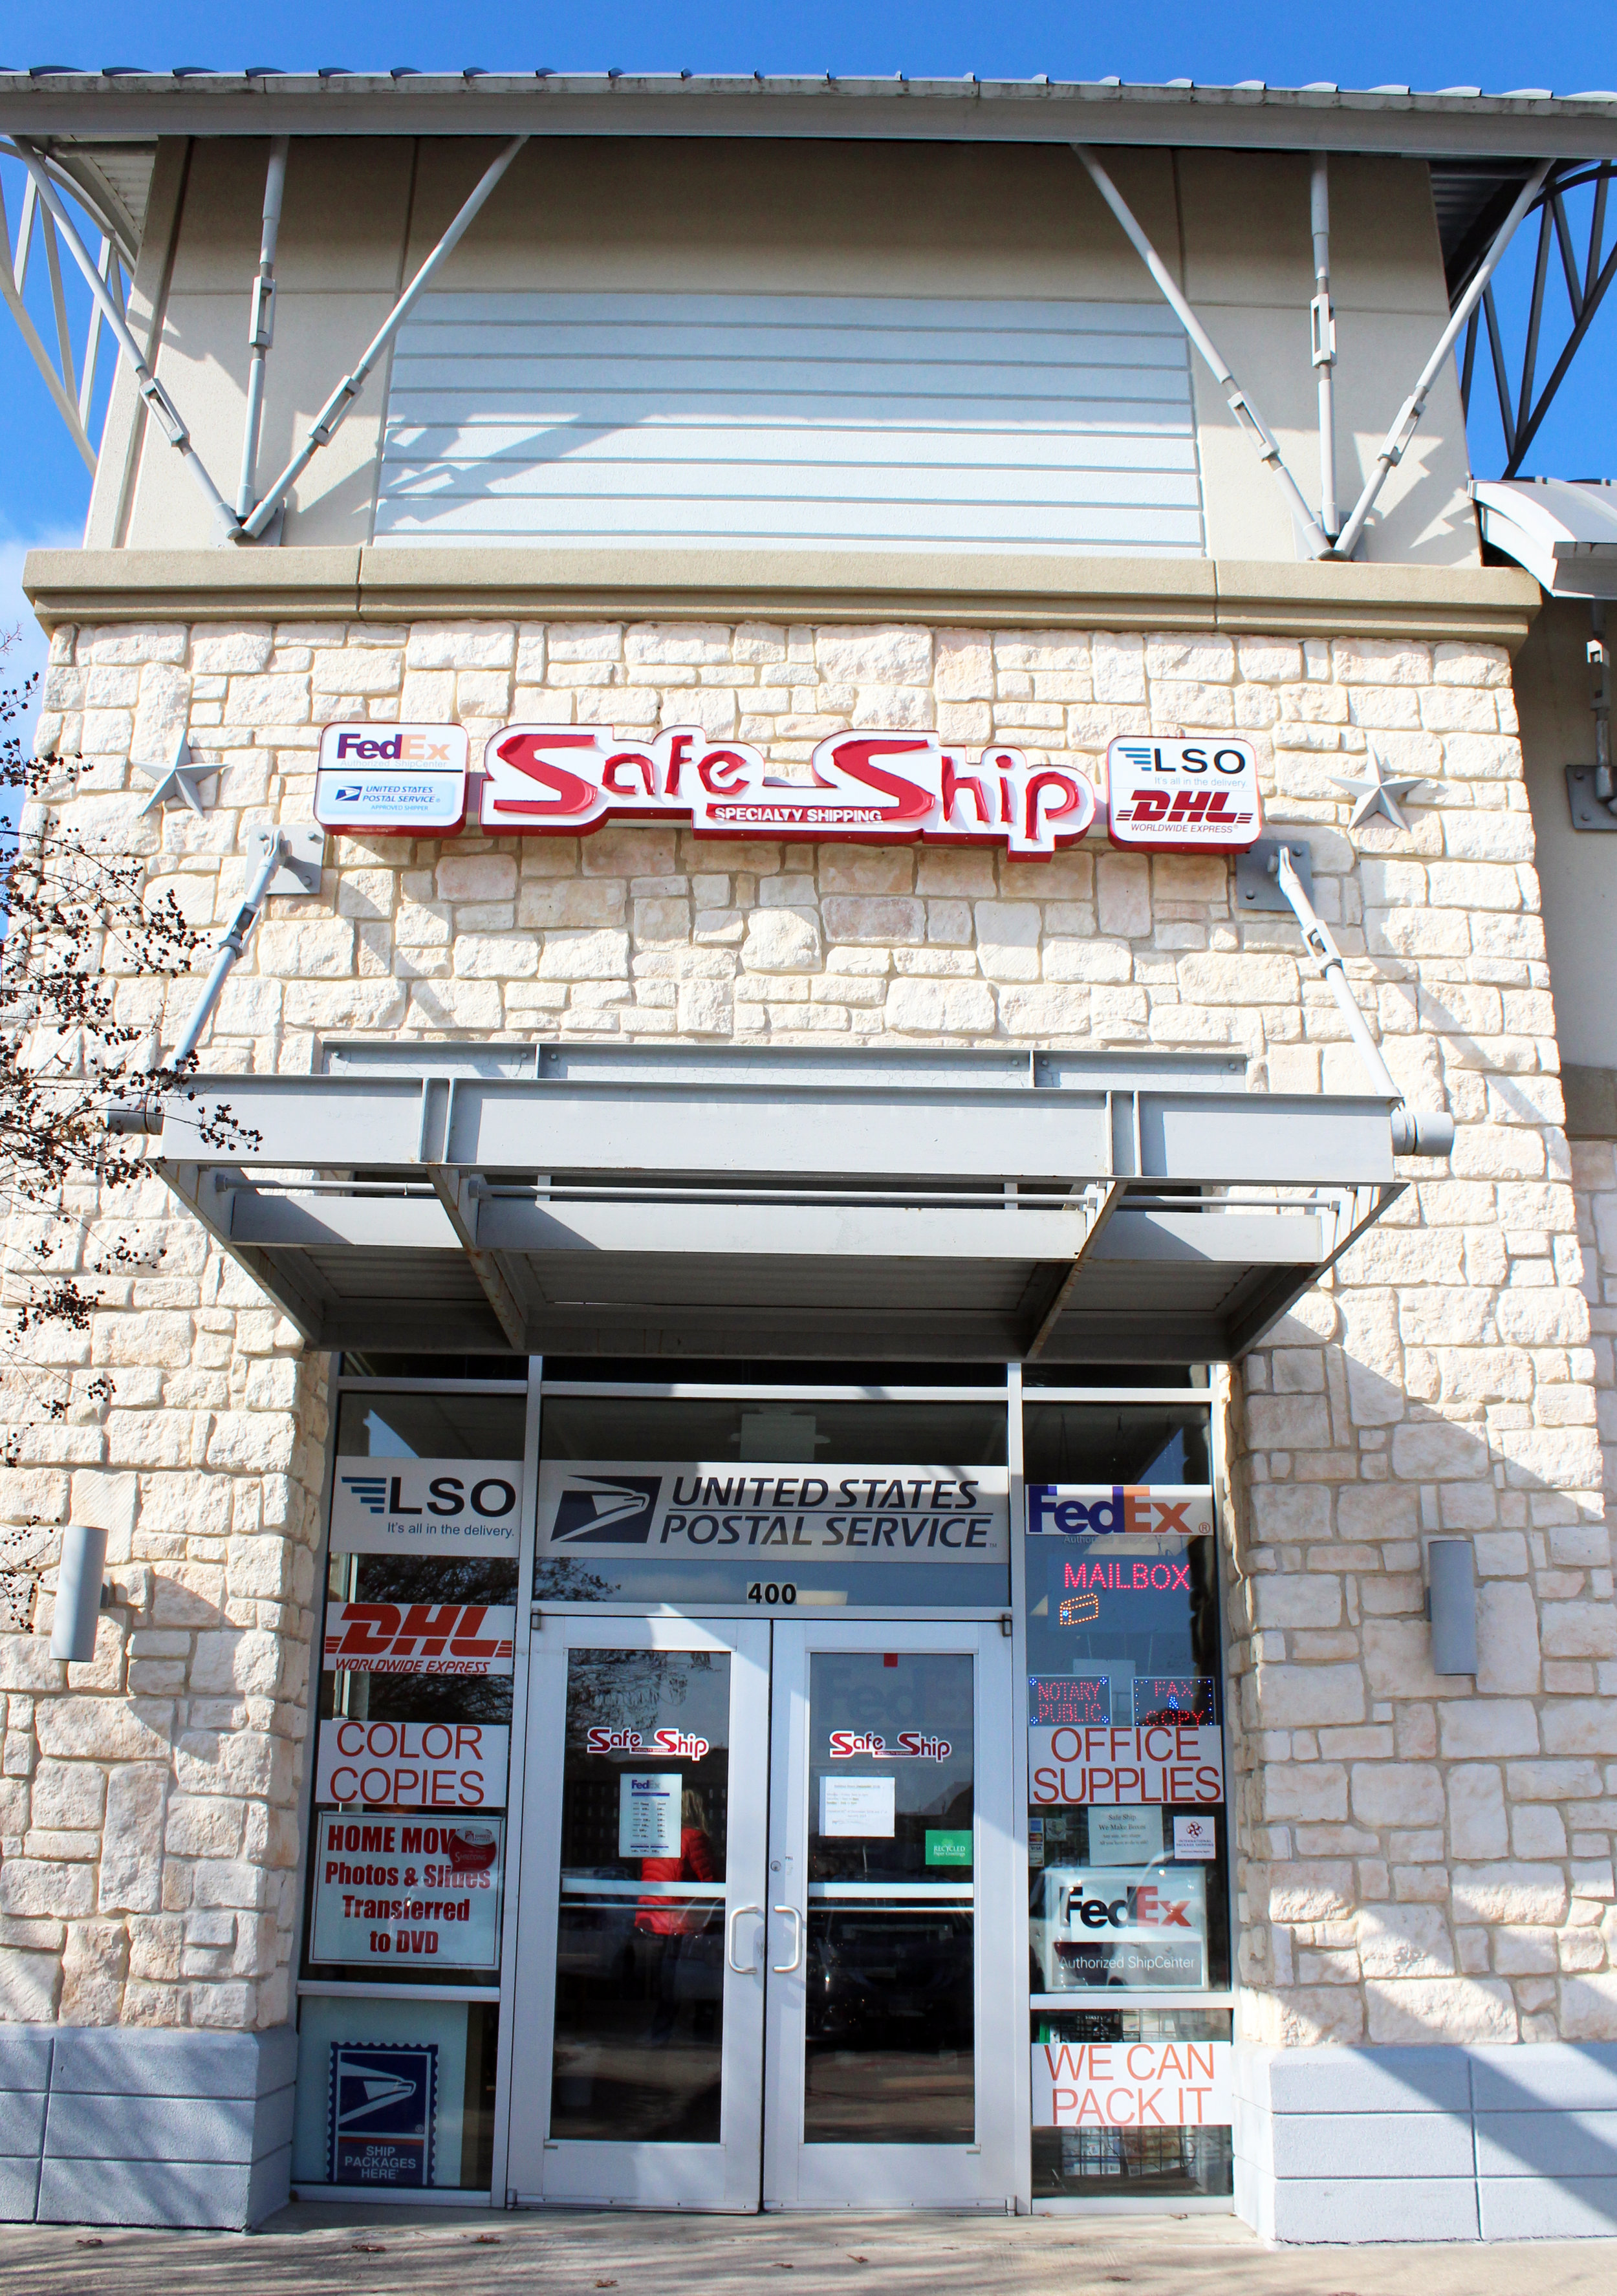 Safe Ship is located at 1719 Angel Pkwy., Suite 400 in Allen at the corner of Angel Pkwy. and Stacy Rd.